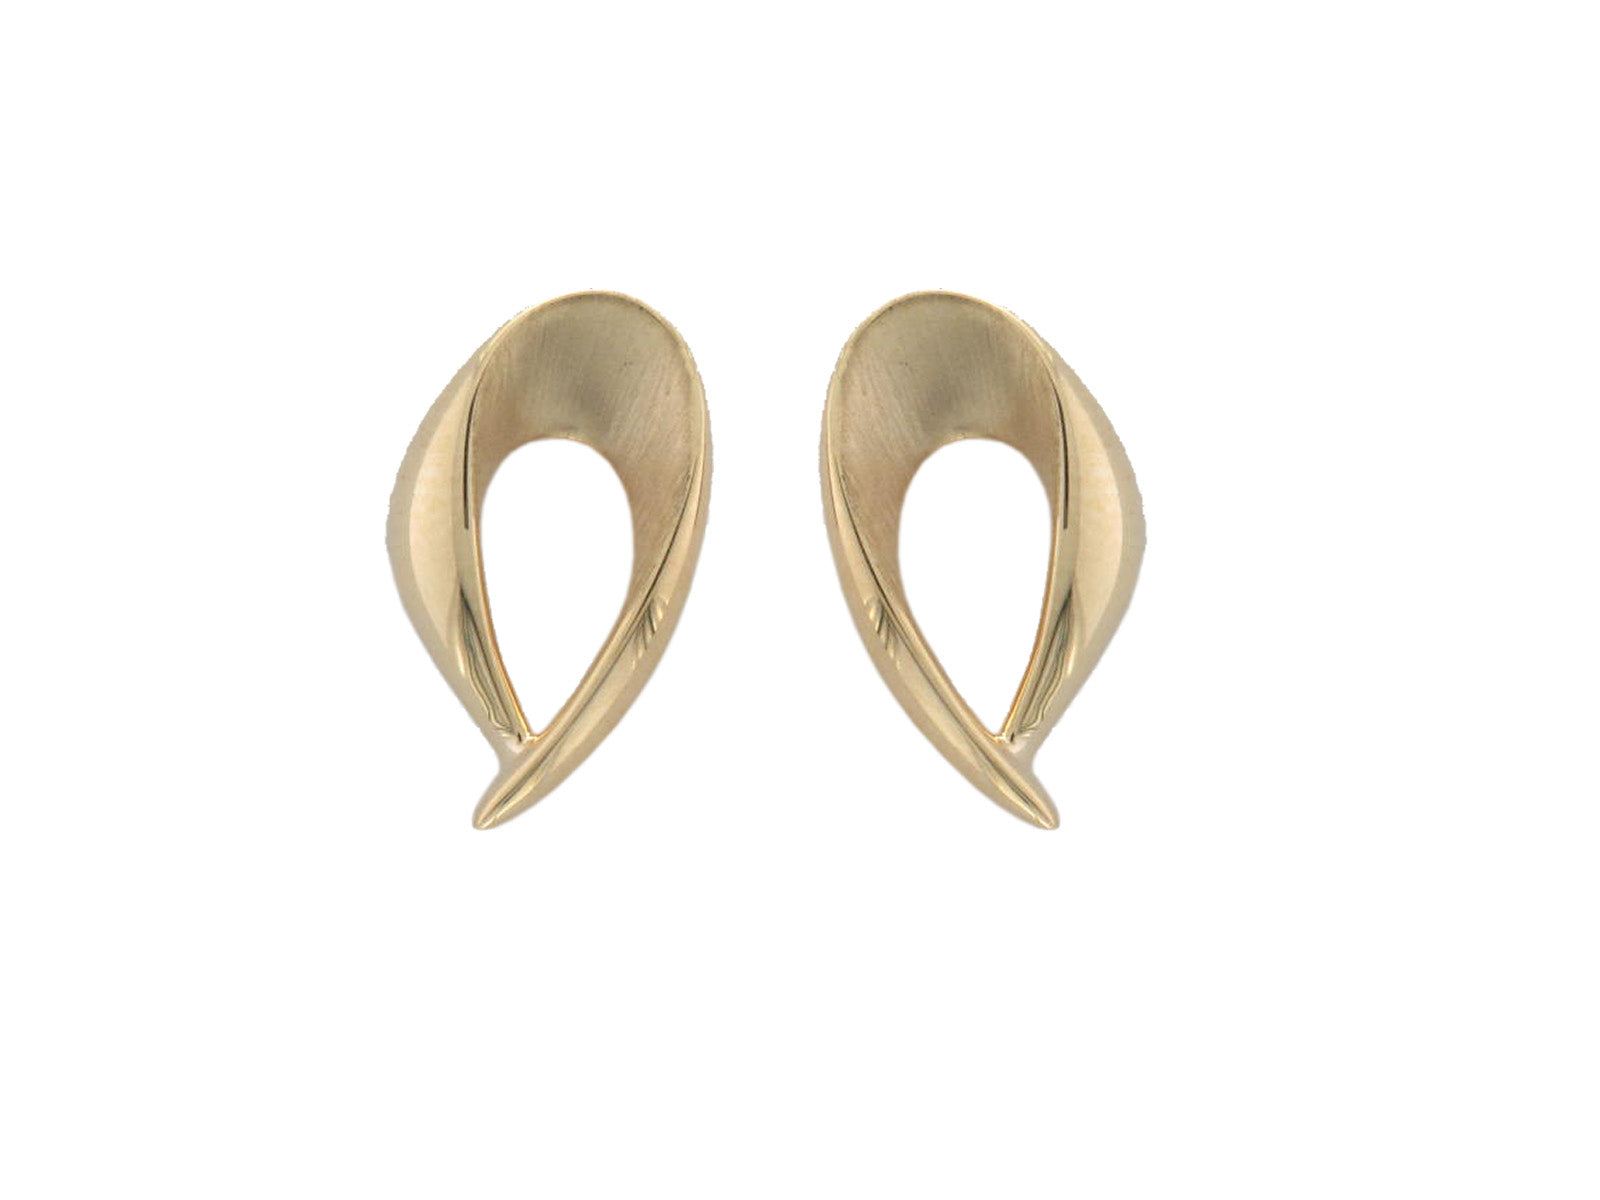 9ct Yellow Gold Teardrop Stud Earrings - Andrew Scott